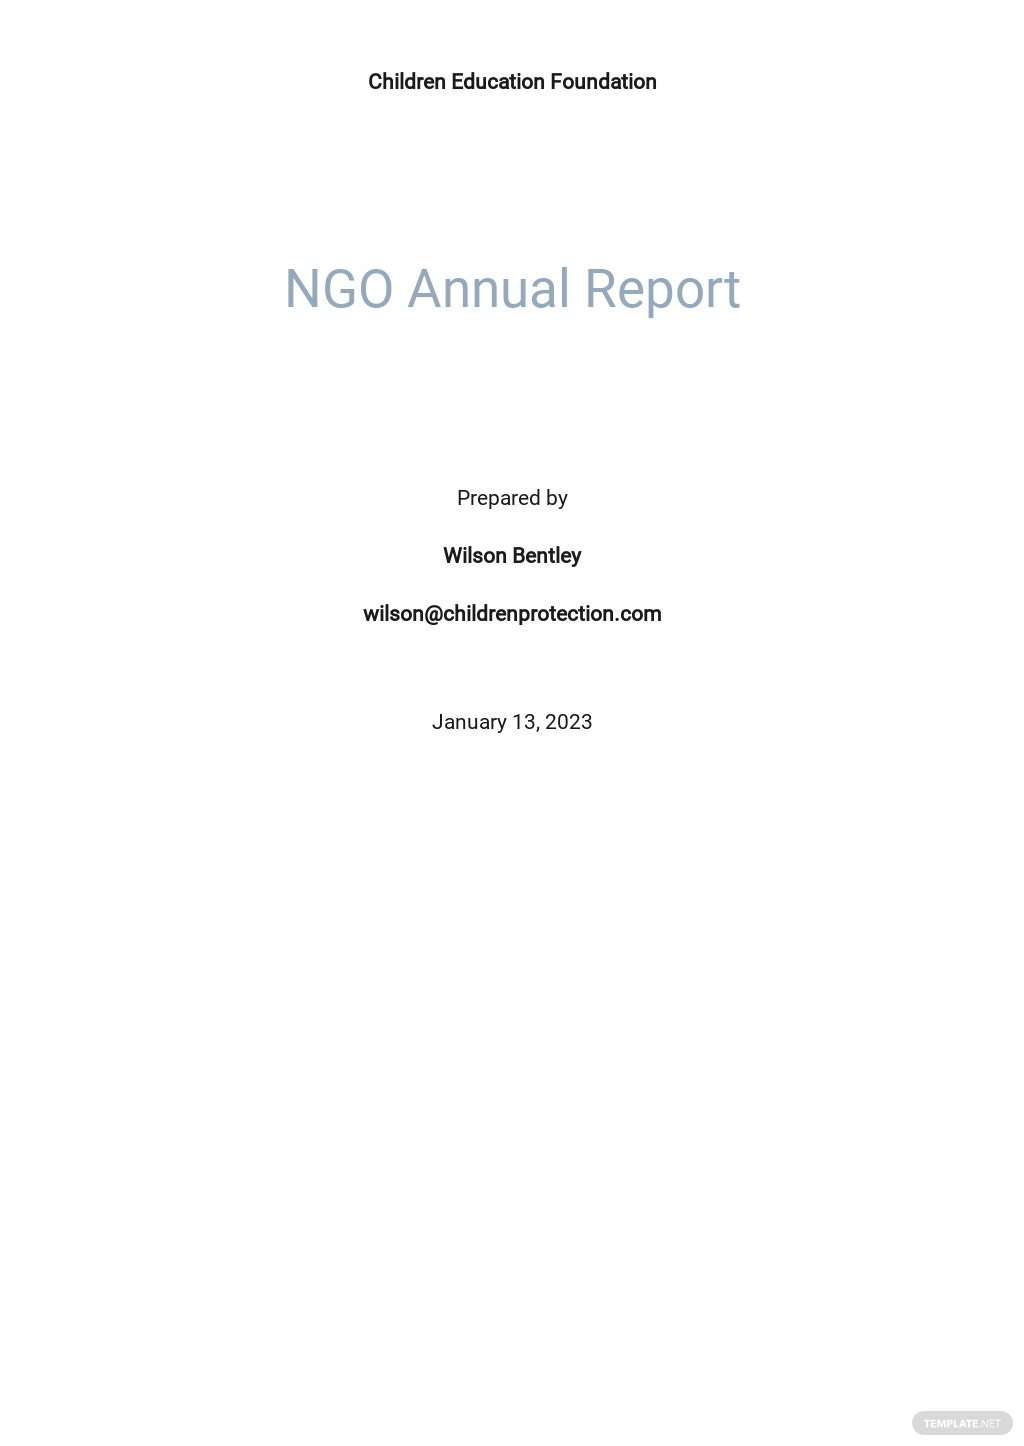 NGO Annual Report Template